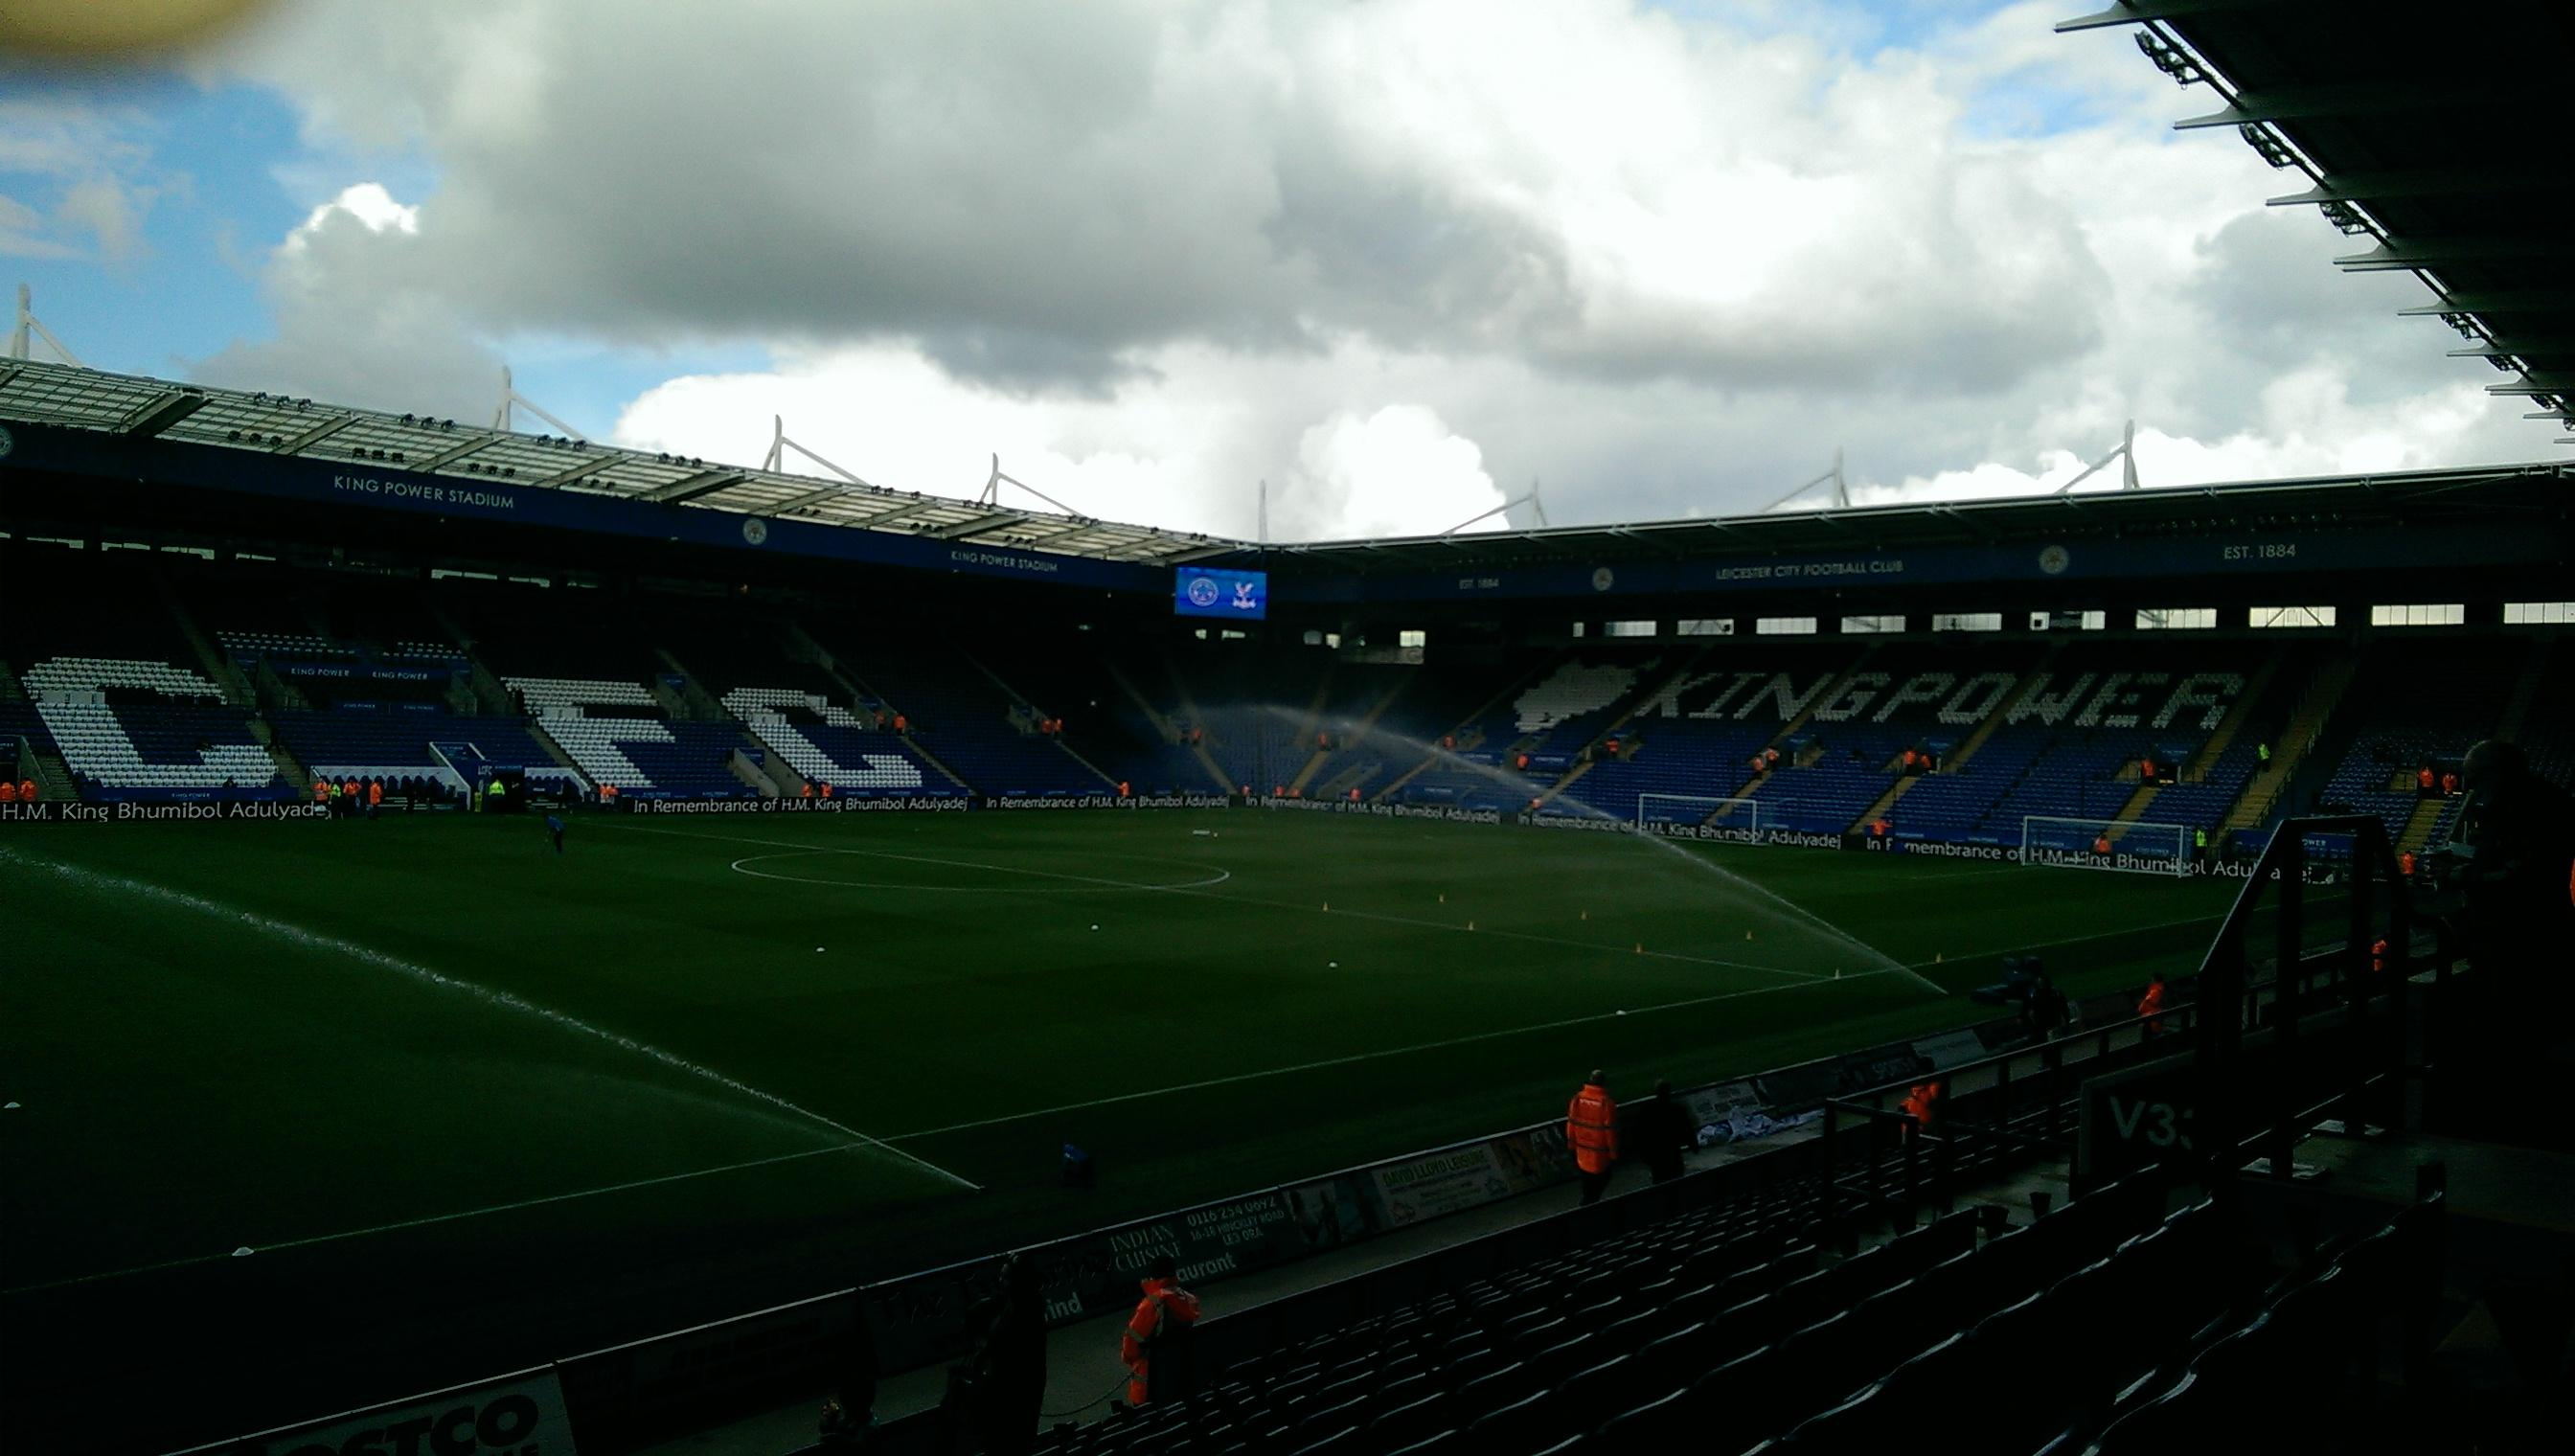 King Power Stadium Section H1 Row P Seat 132